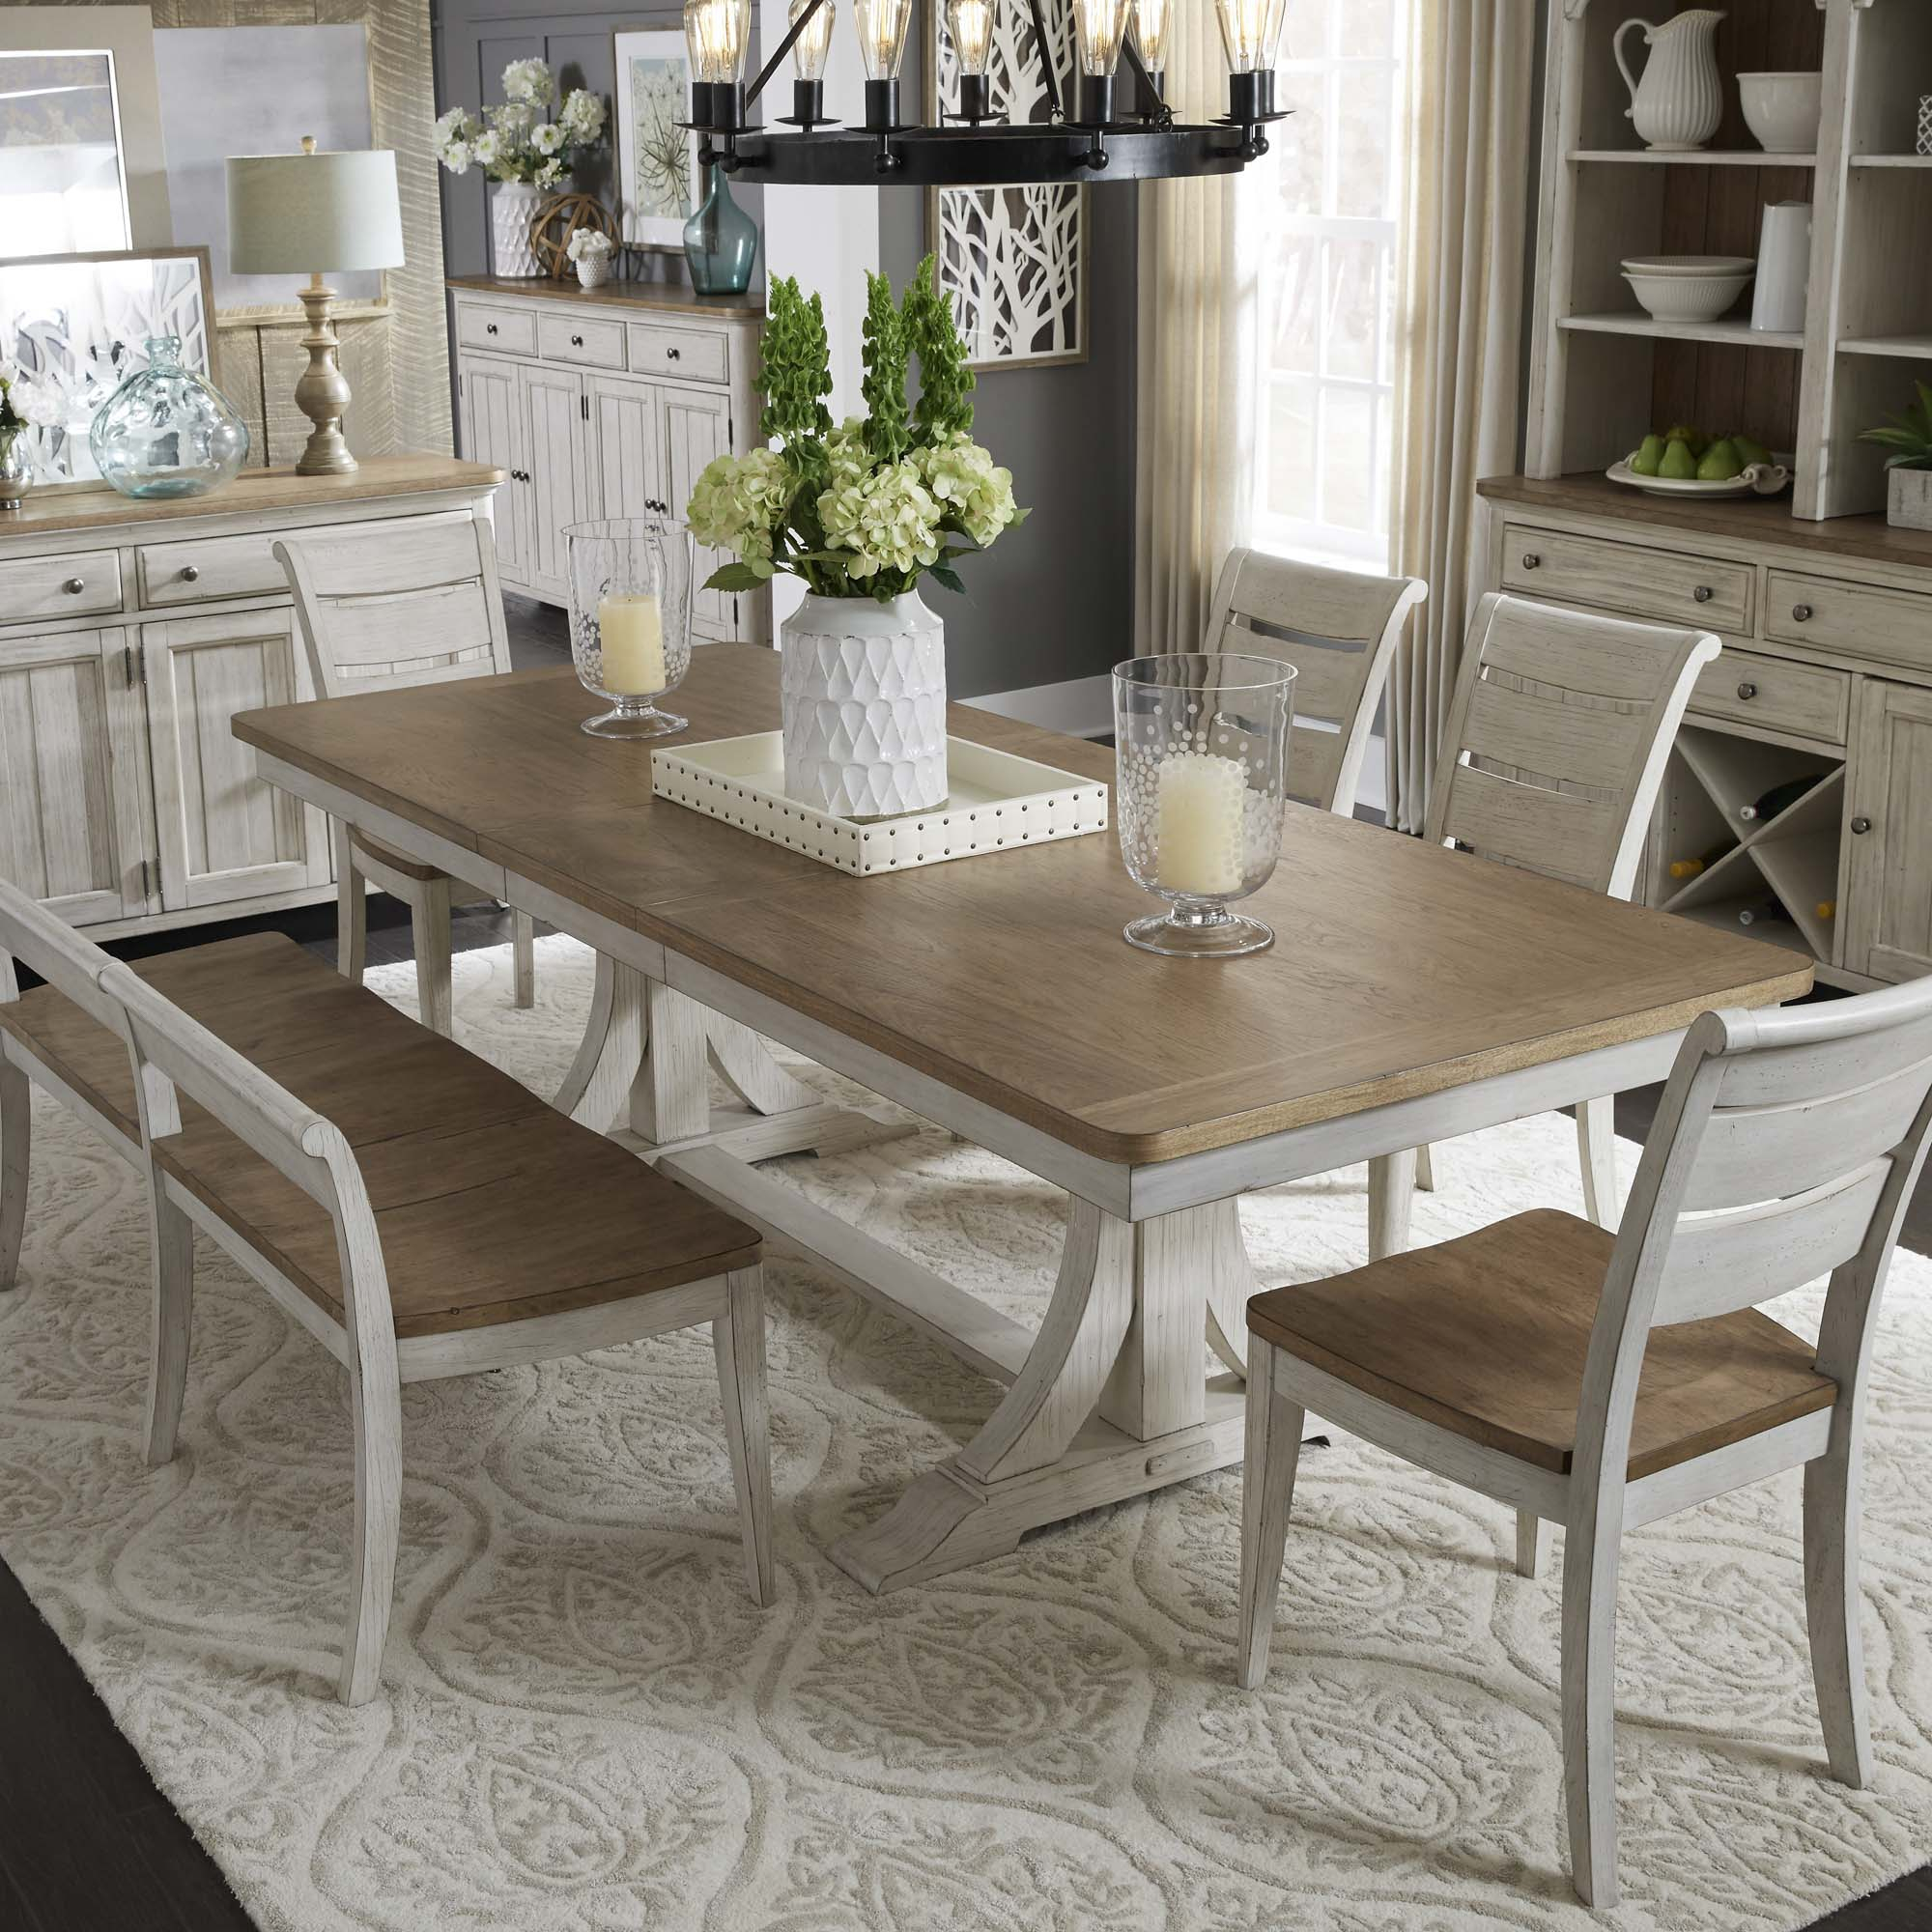 Liberty Furniture | Home Furniture, Home Décor, Furniture Online Pertaining To Newest Cincinnati 3 Piece Dining Sets (View 10 of 20)